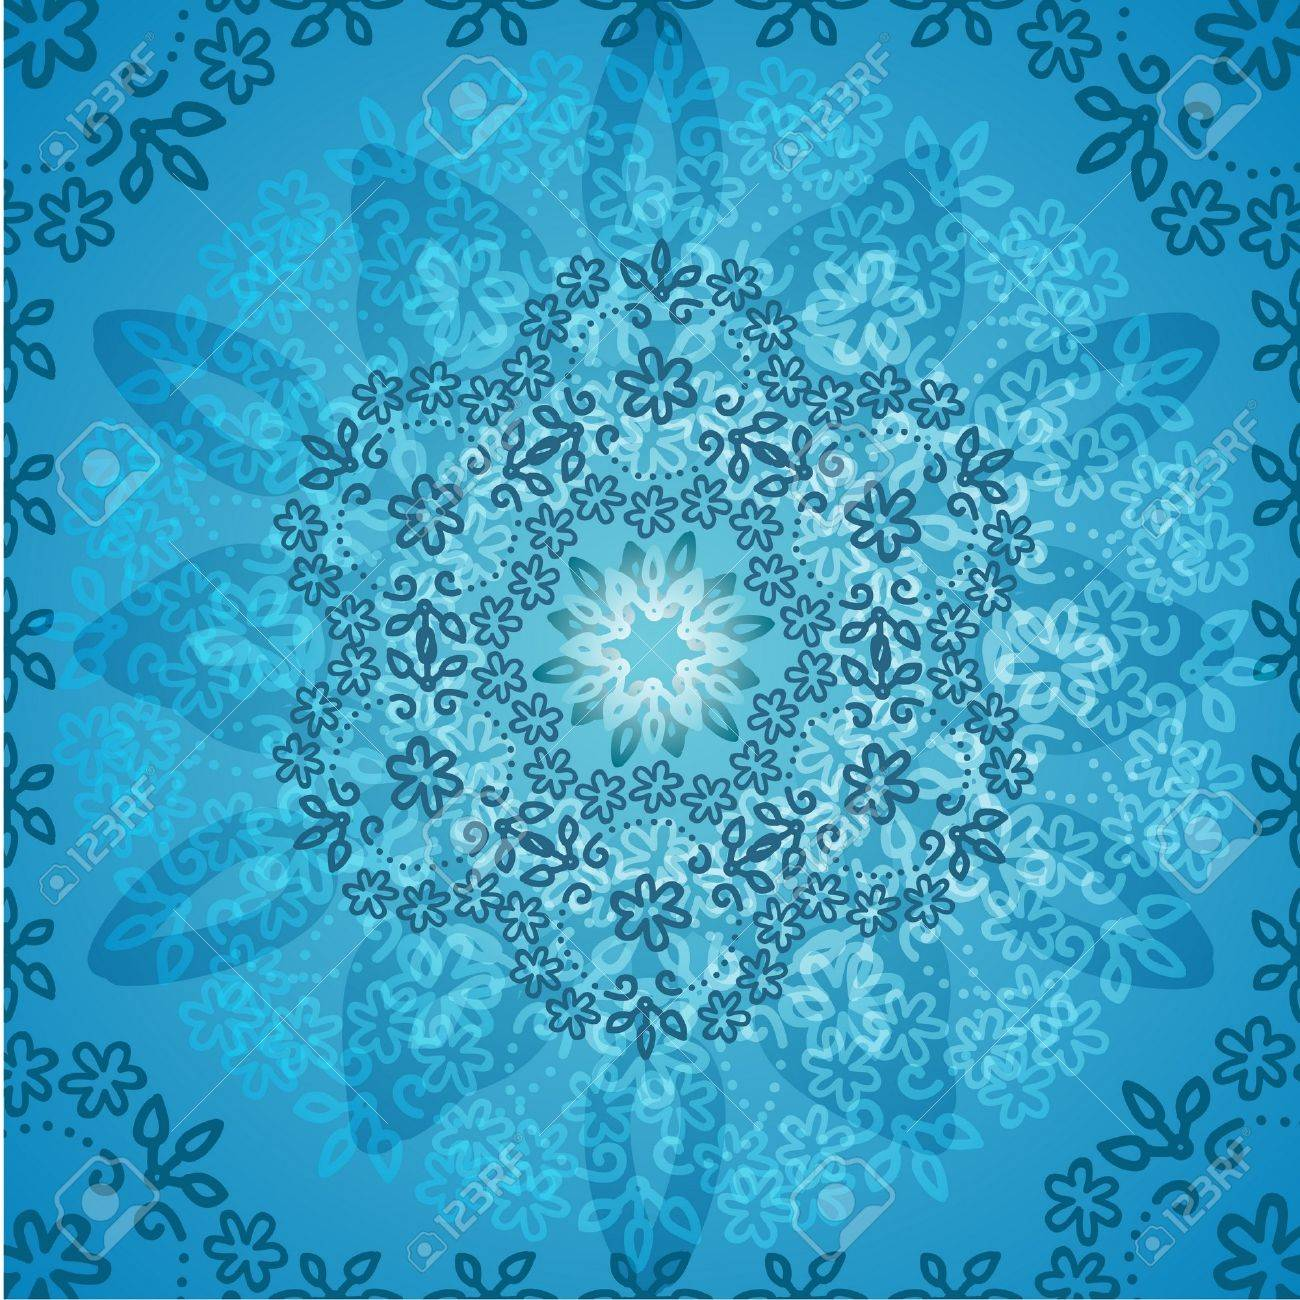 Background Light Blue Flowers Abstract Royalty Free Cliparts